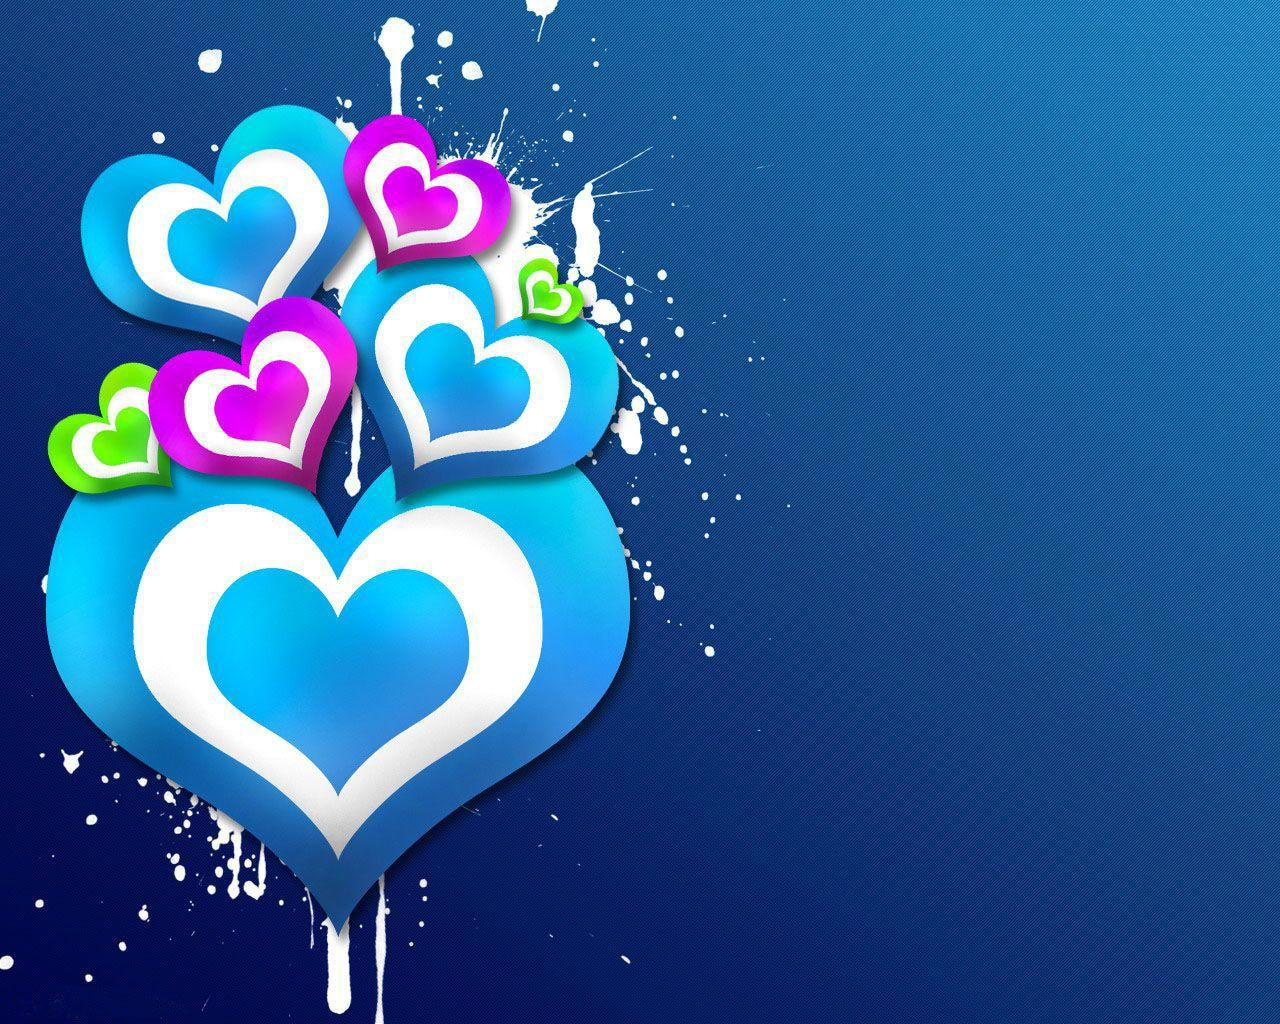 3d Love Live Wallpaper For Mobile : Love Wallpapers 3D - Wallpaper cave